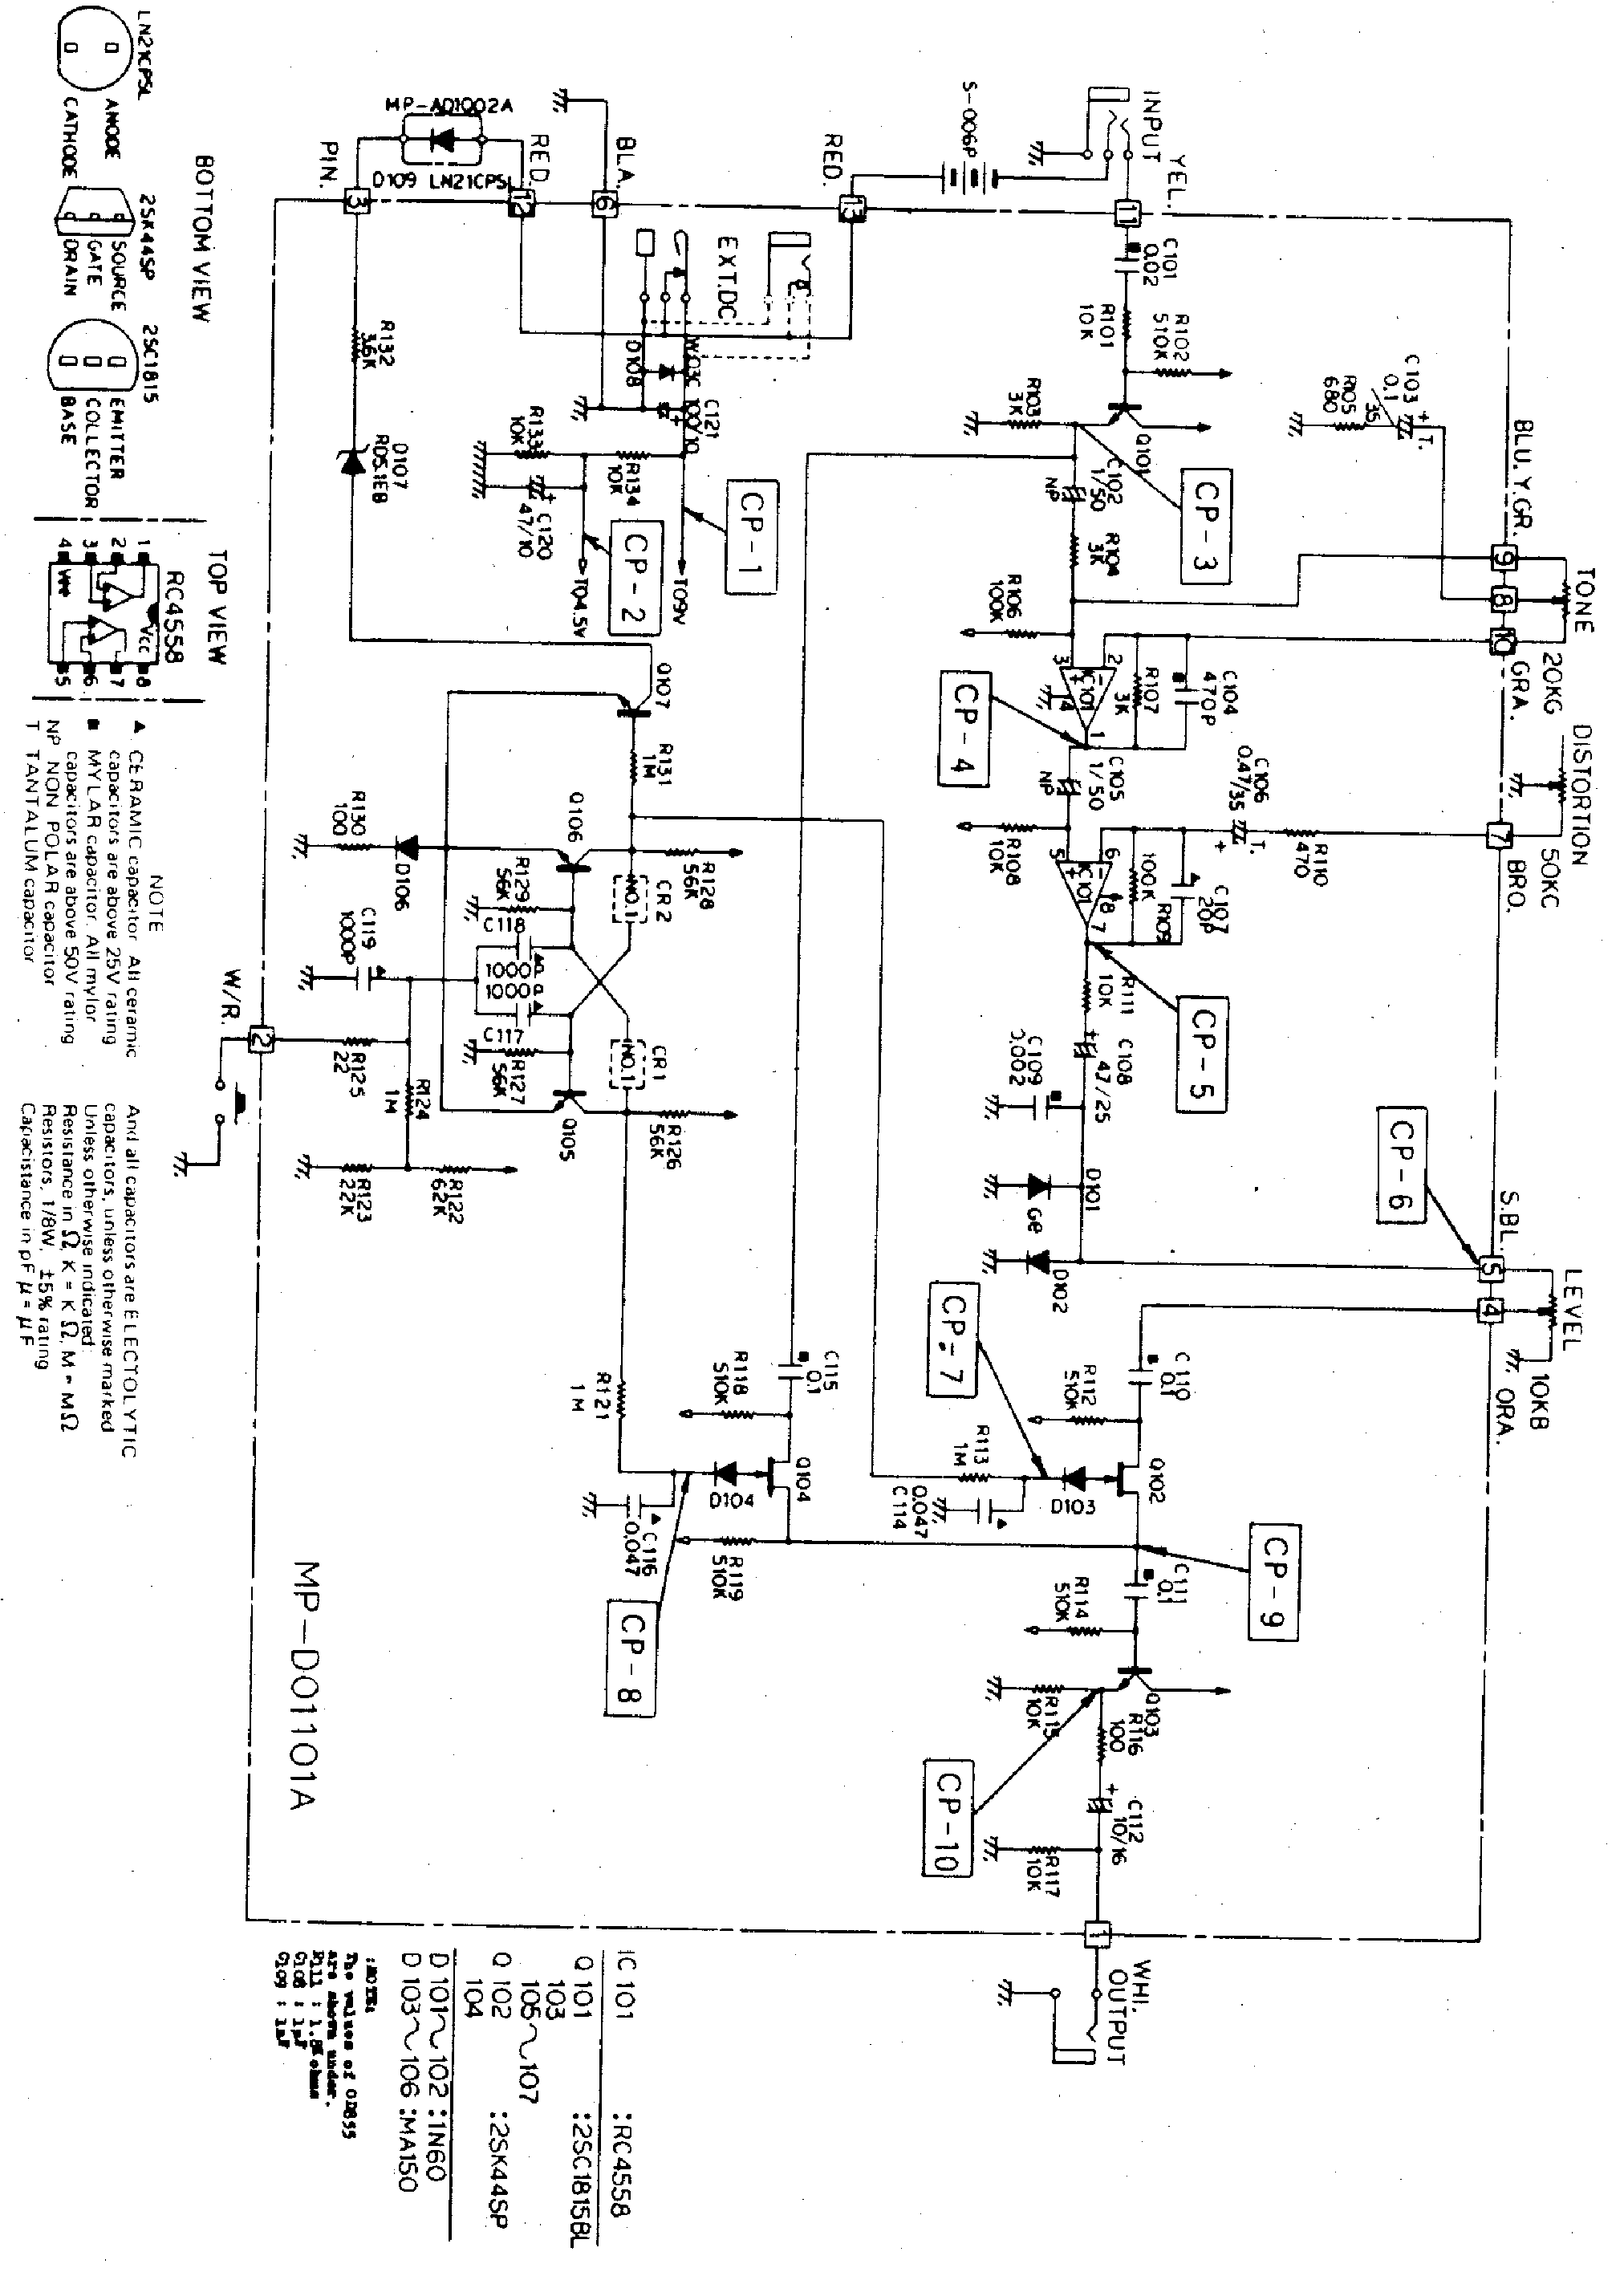 Ibanez St9 Sch Service Manual Download Schematics Eeprom